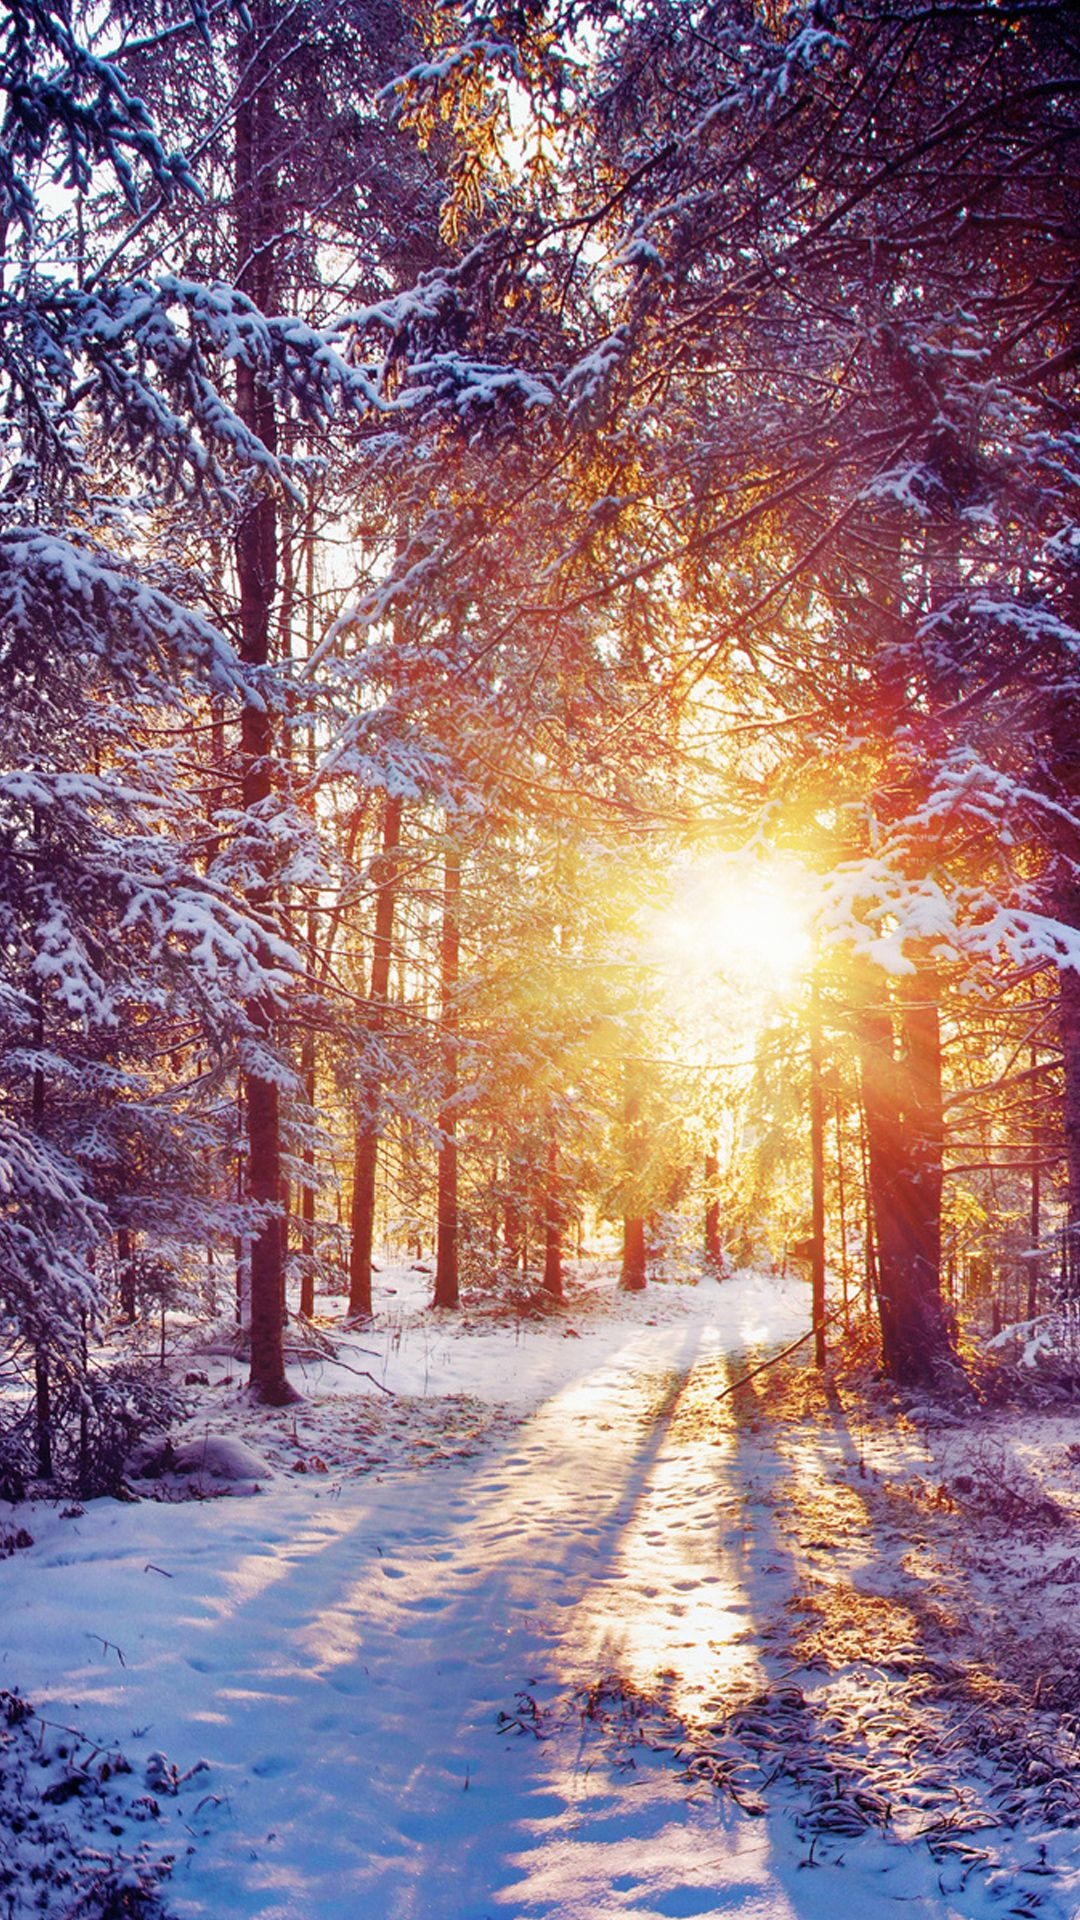 60 BEAUTIFUL NATURE WALLPAPER FREE TO DOWNLOAD Winter